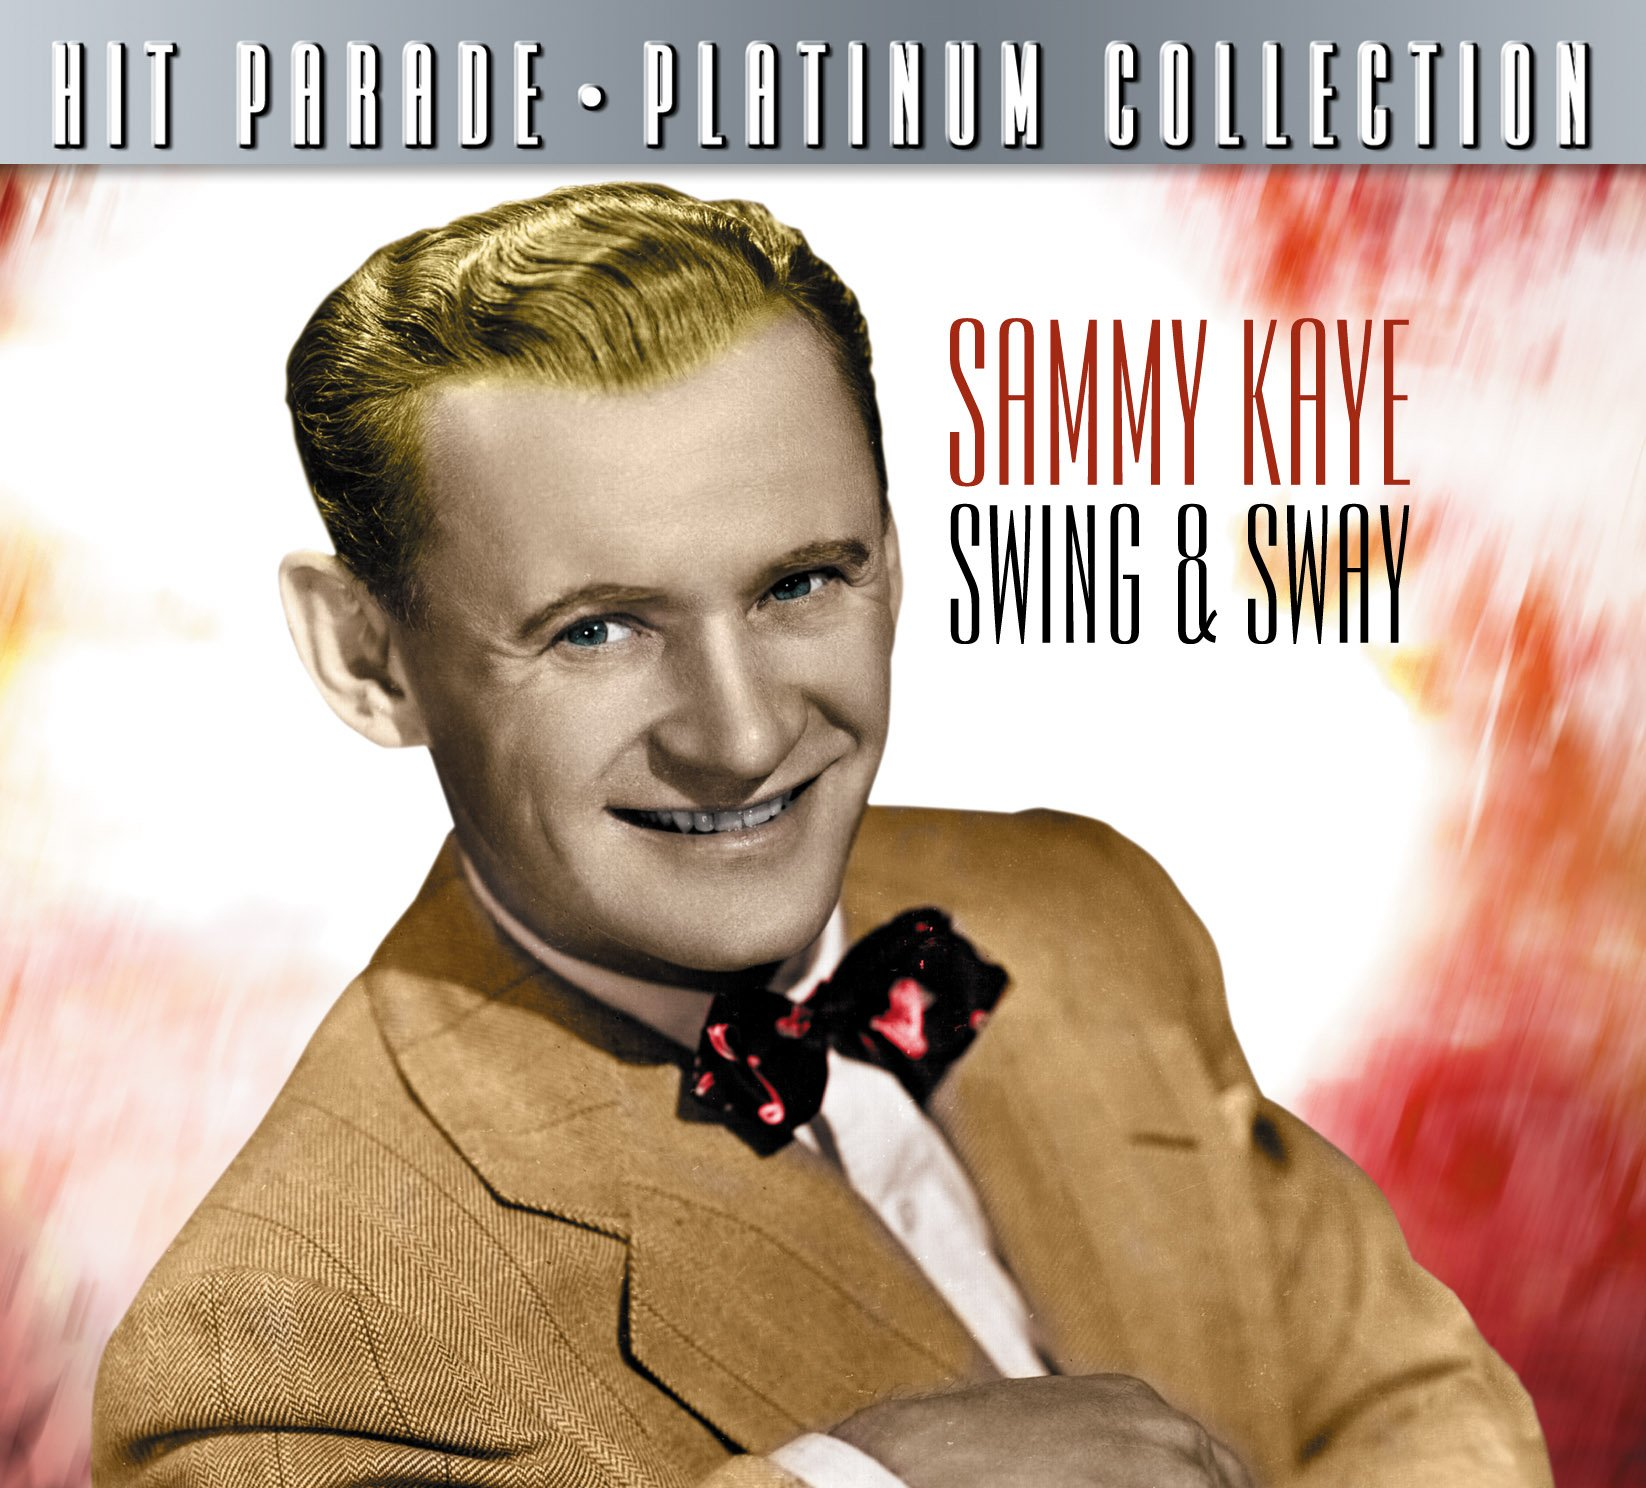 Hit Parade Platinum Collection: Sammy Kaye Swing & Sway by Dynamic